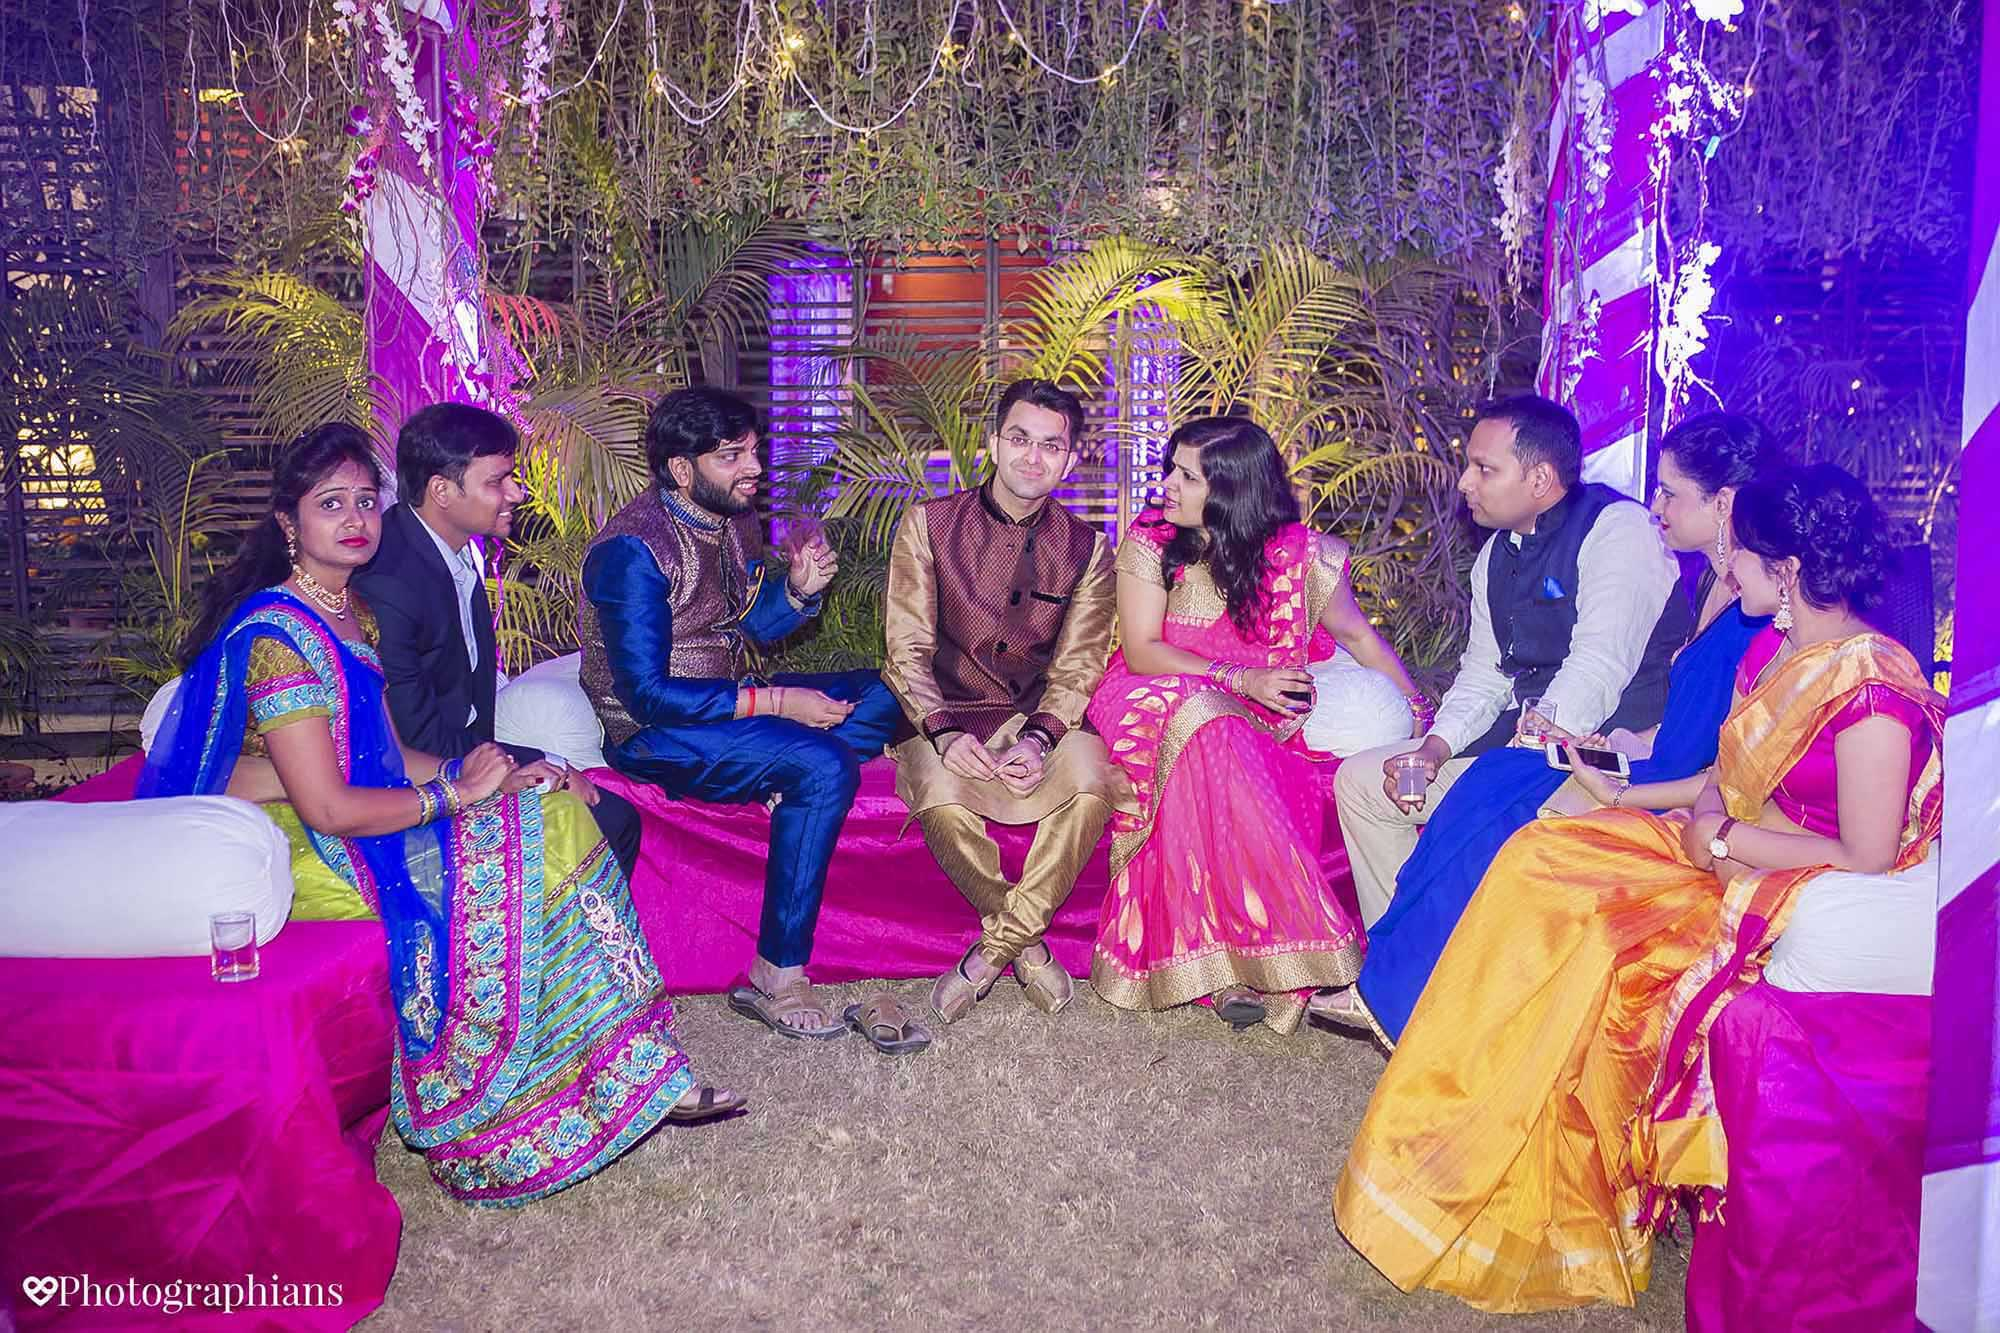 Bengali_Wedding_Photography_Kolkata_Photographians_102